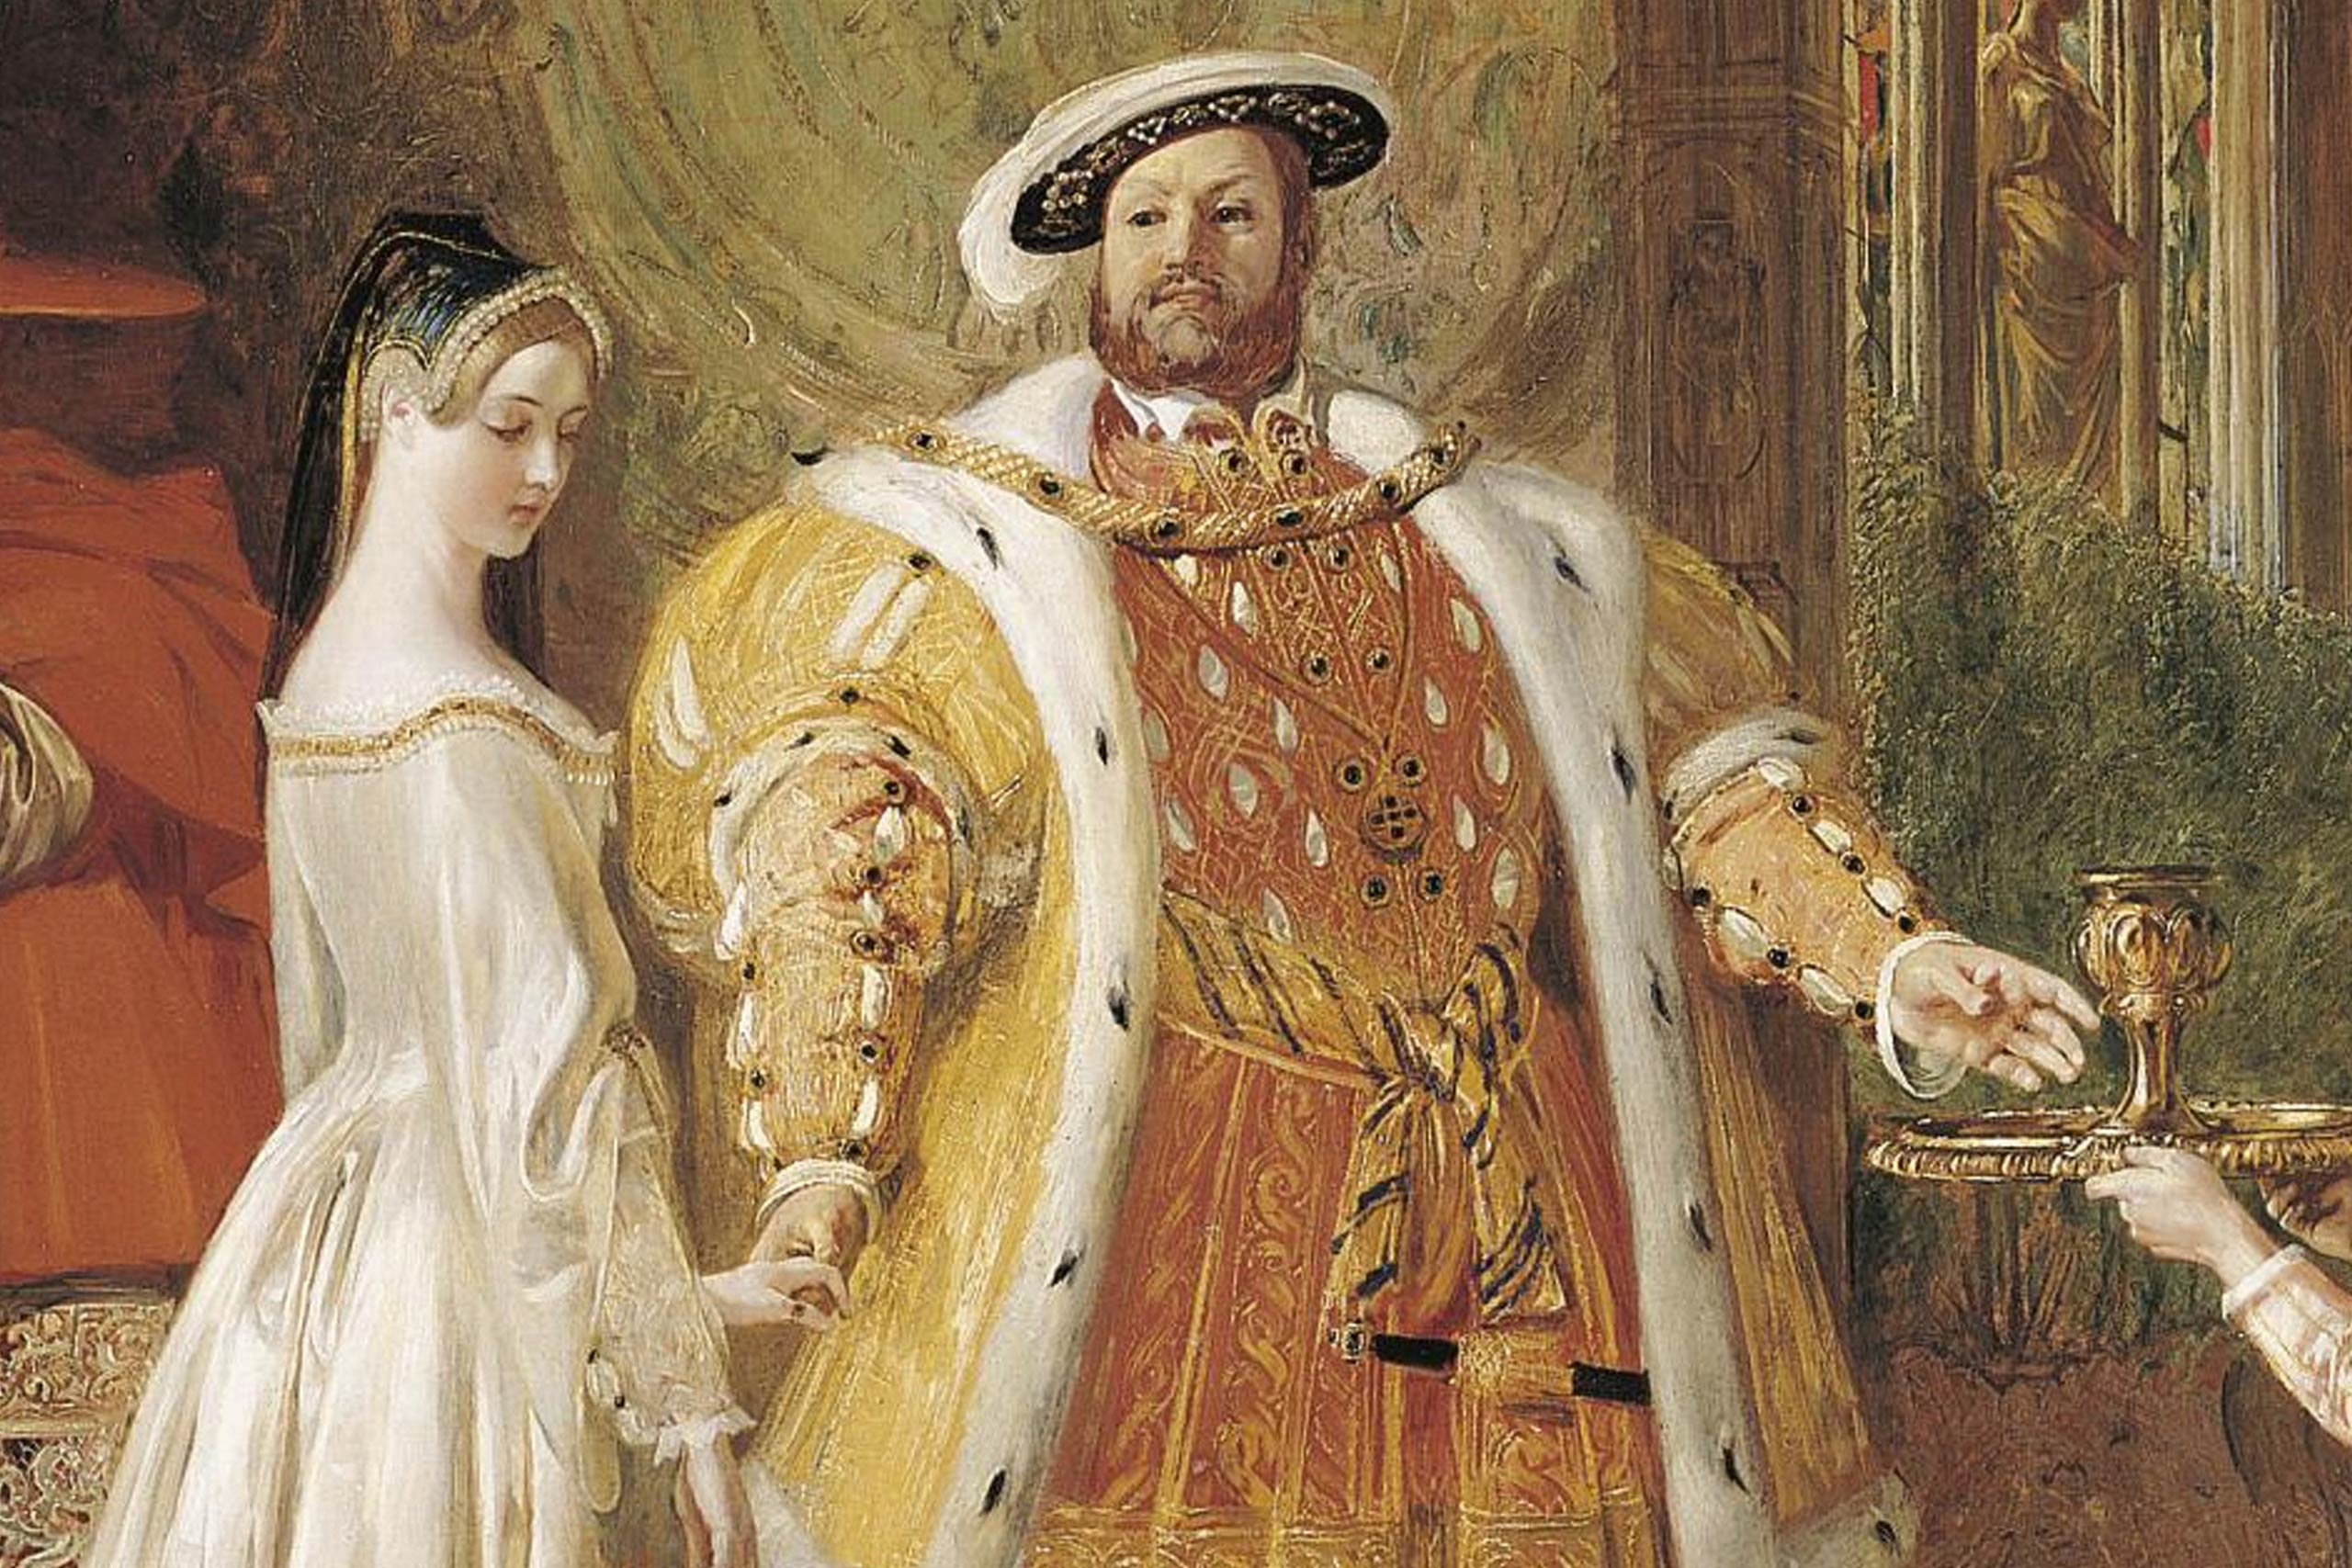 First meeting of Henry VIII and Anne Boleyn, 1835. Artist: Maclise, Daniel (1806-1870)